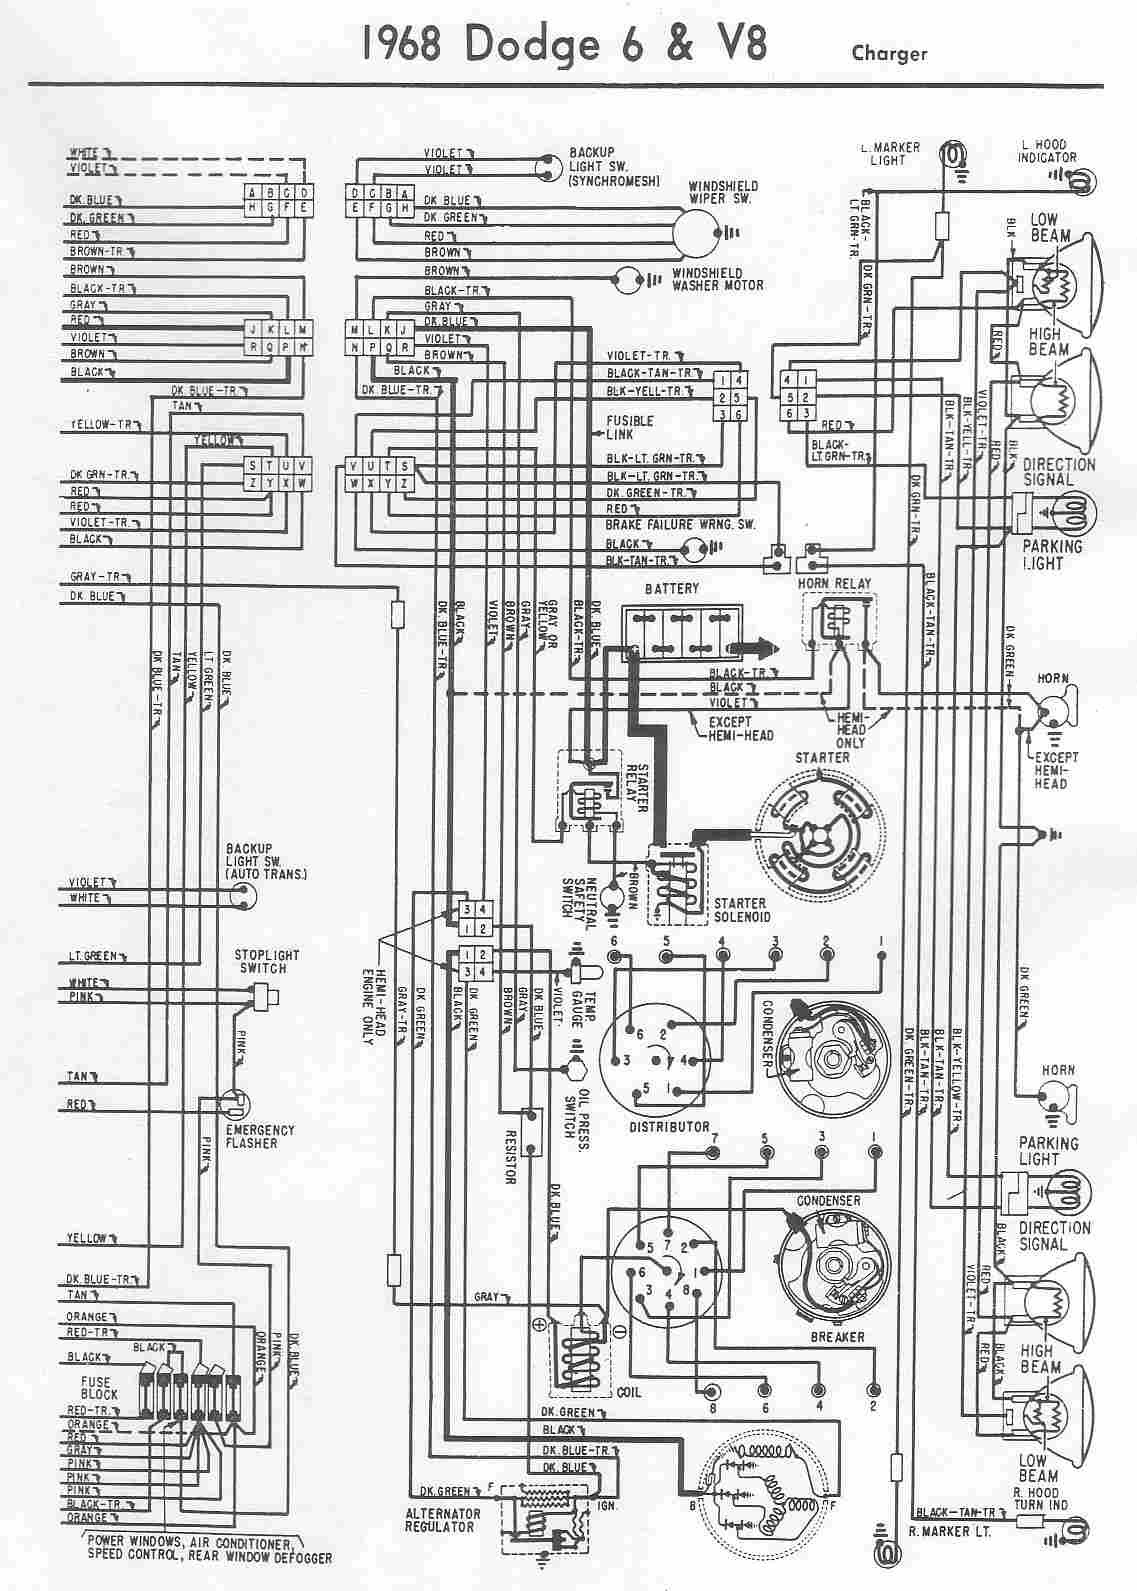 1990 Dodge Ram Wiring Diagram Library 2005 Tail Light Image Alternator Regulator 1968